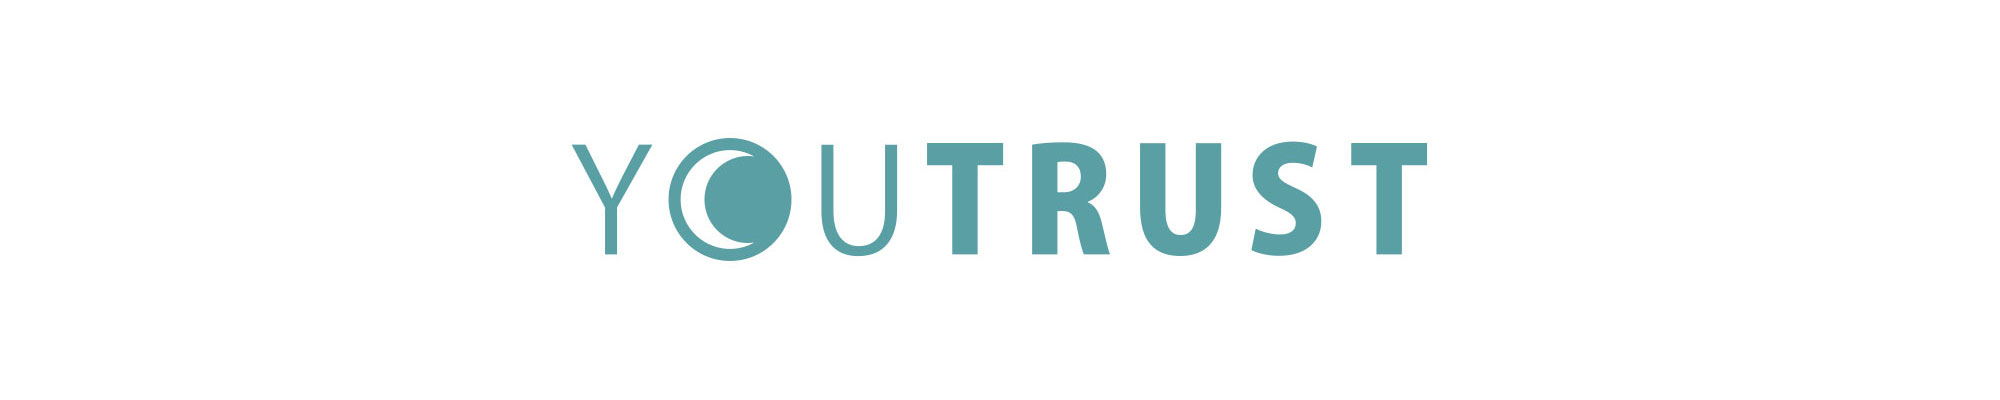 youtrust_logo_type4